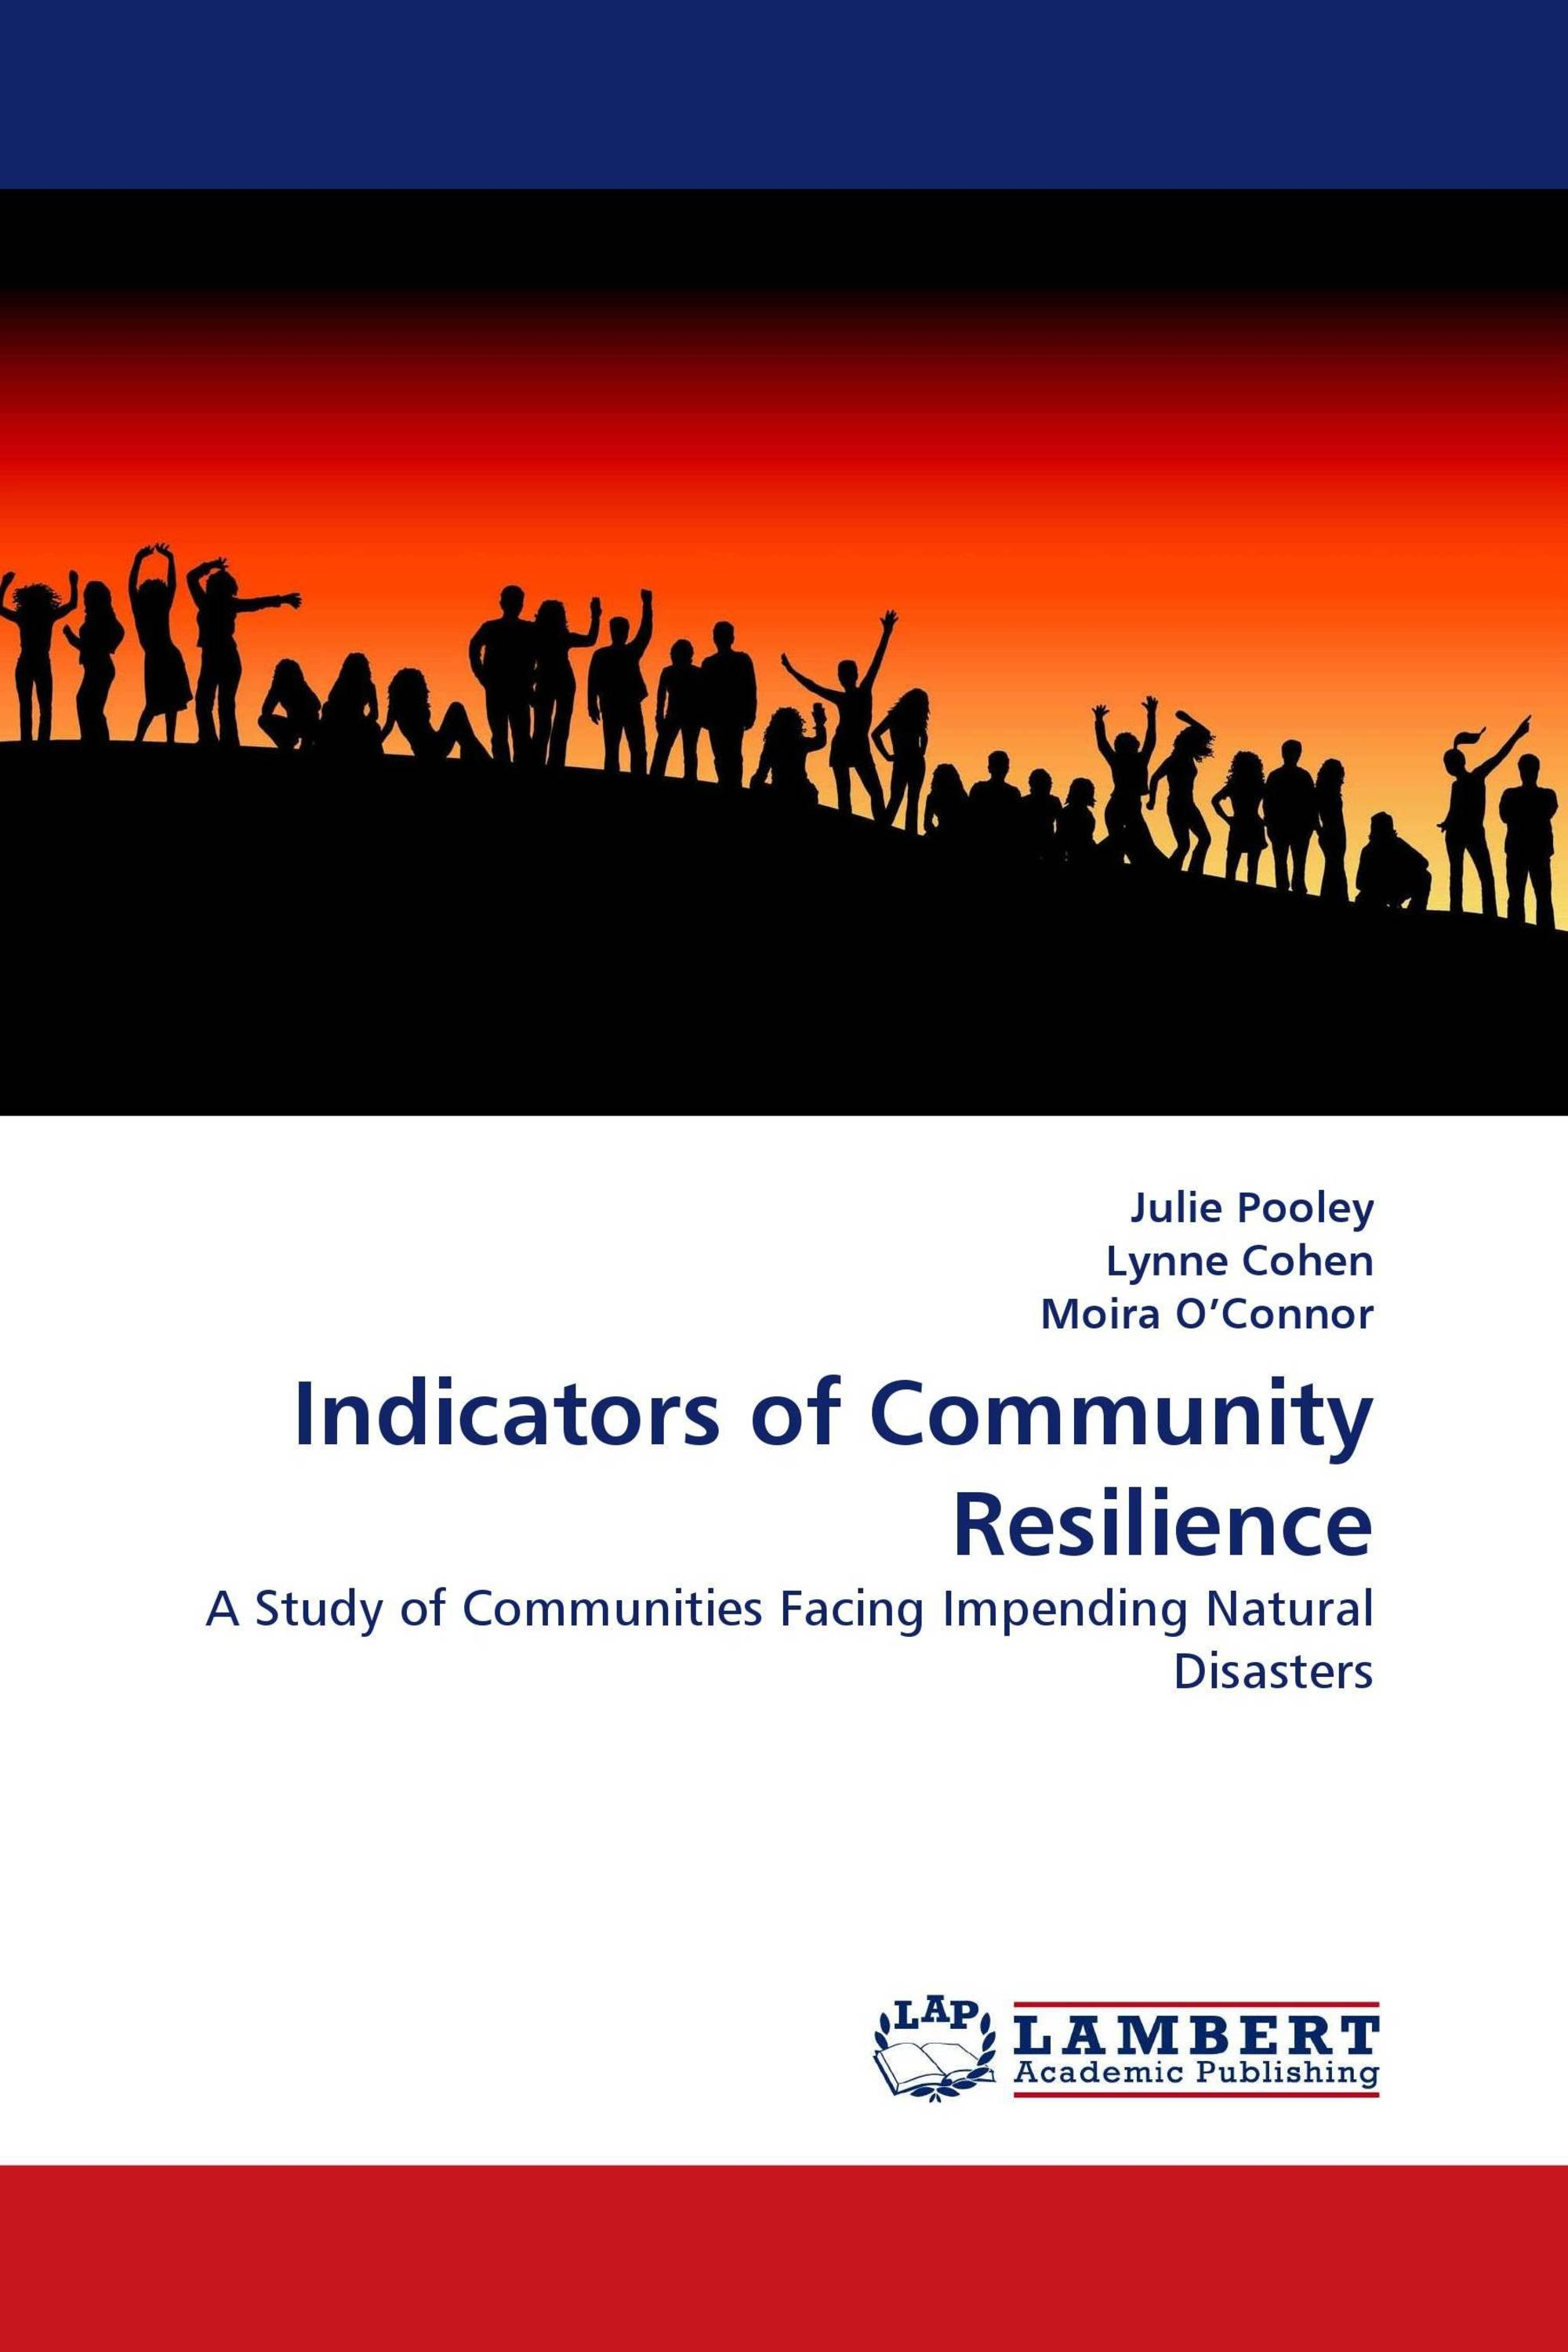 Indicators of Community Resilience